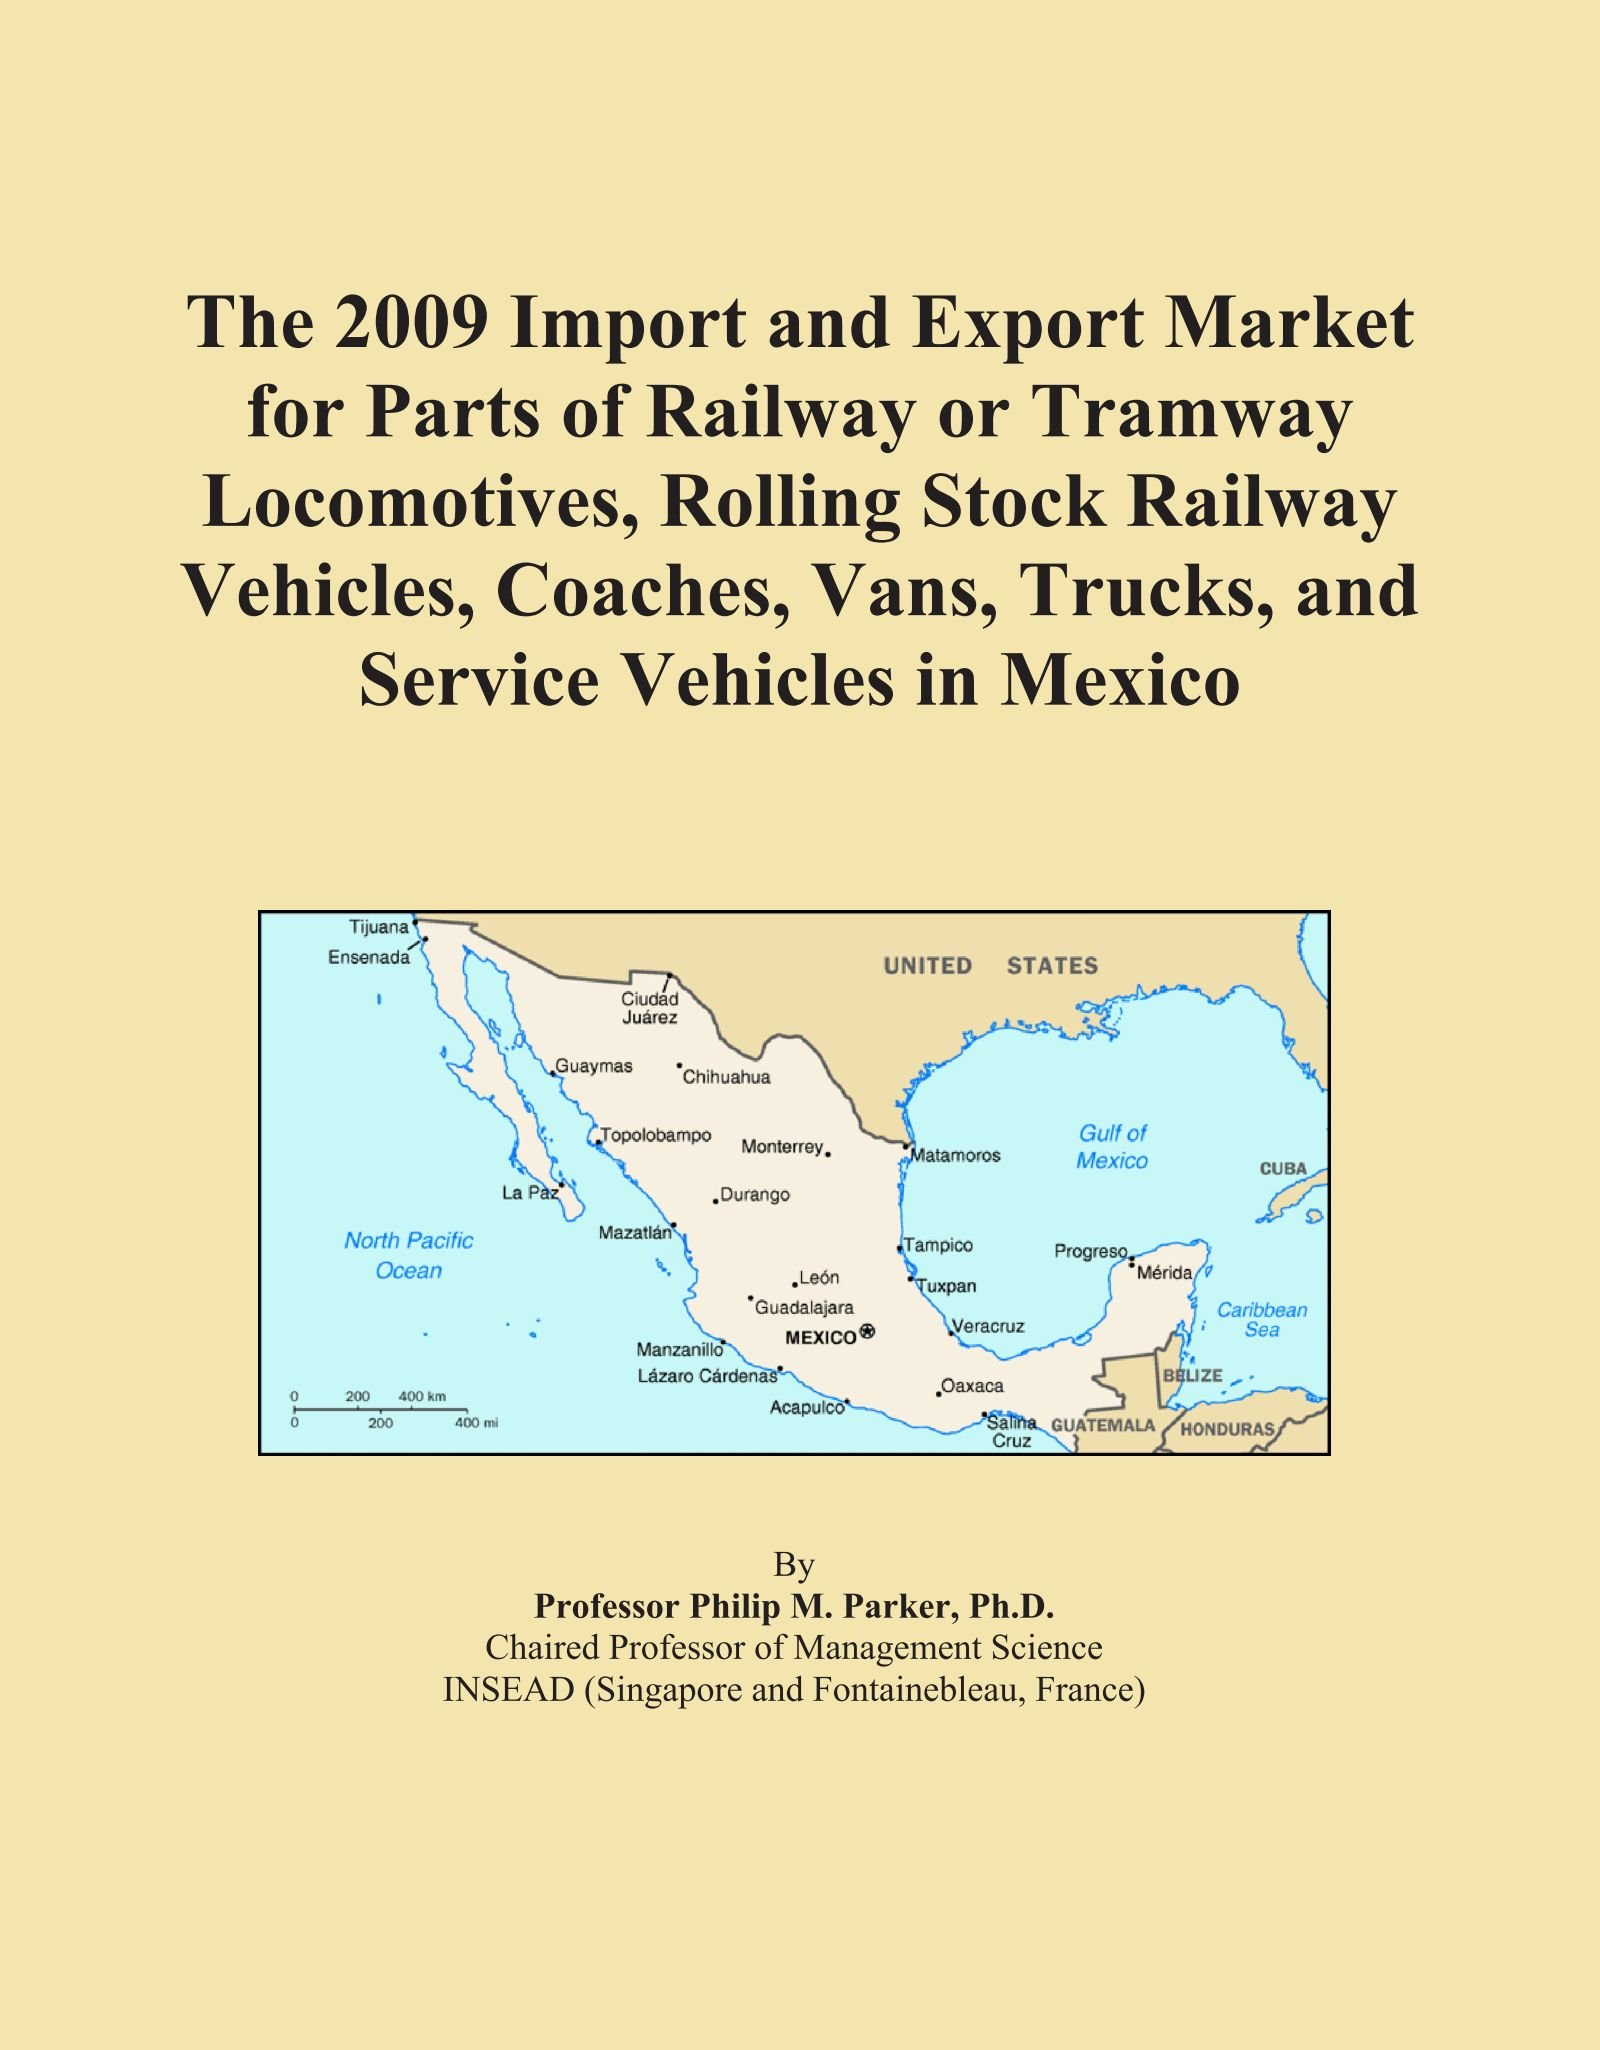 The 2009 Import and Export Market for Parts of Railway or Tramway Locomotives, Rolling Stock Railway Vehicles, Coaches, Vans, Trucks, and Service Vehicles in Mexico pdf